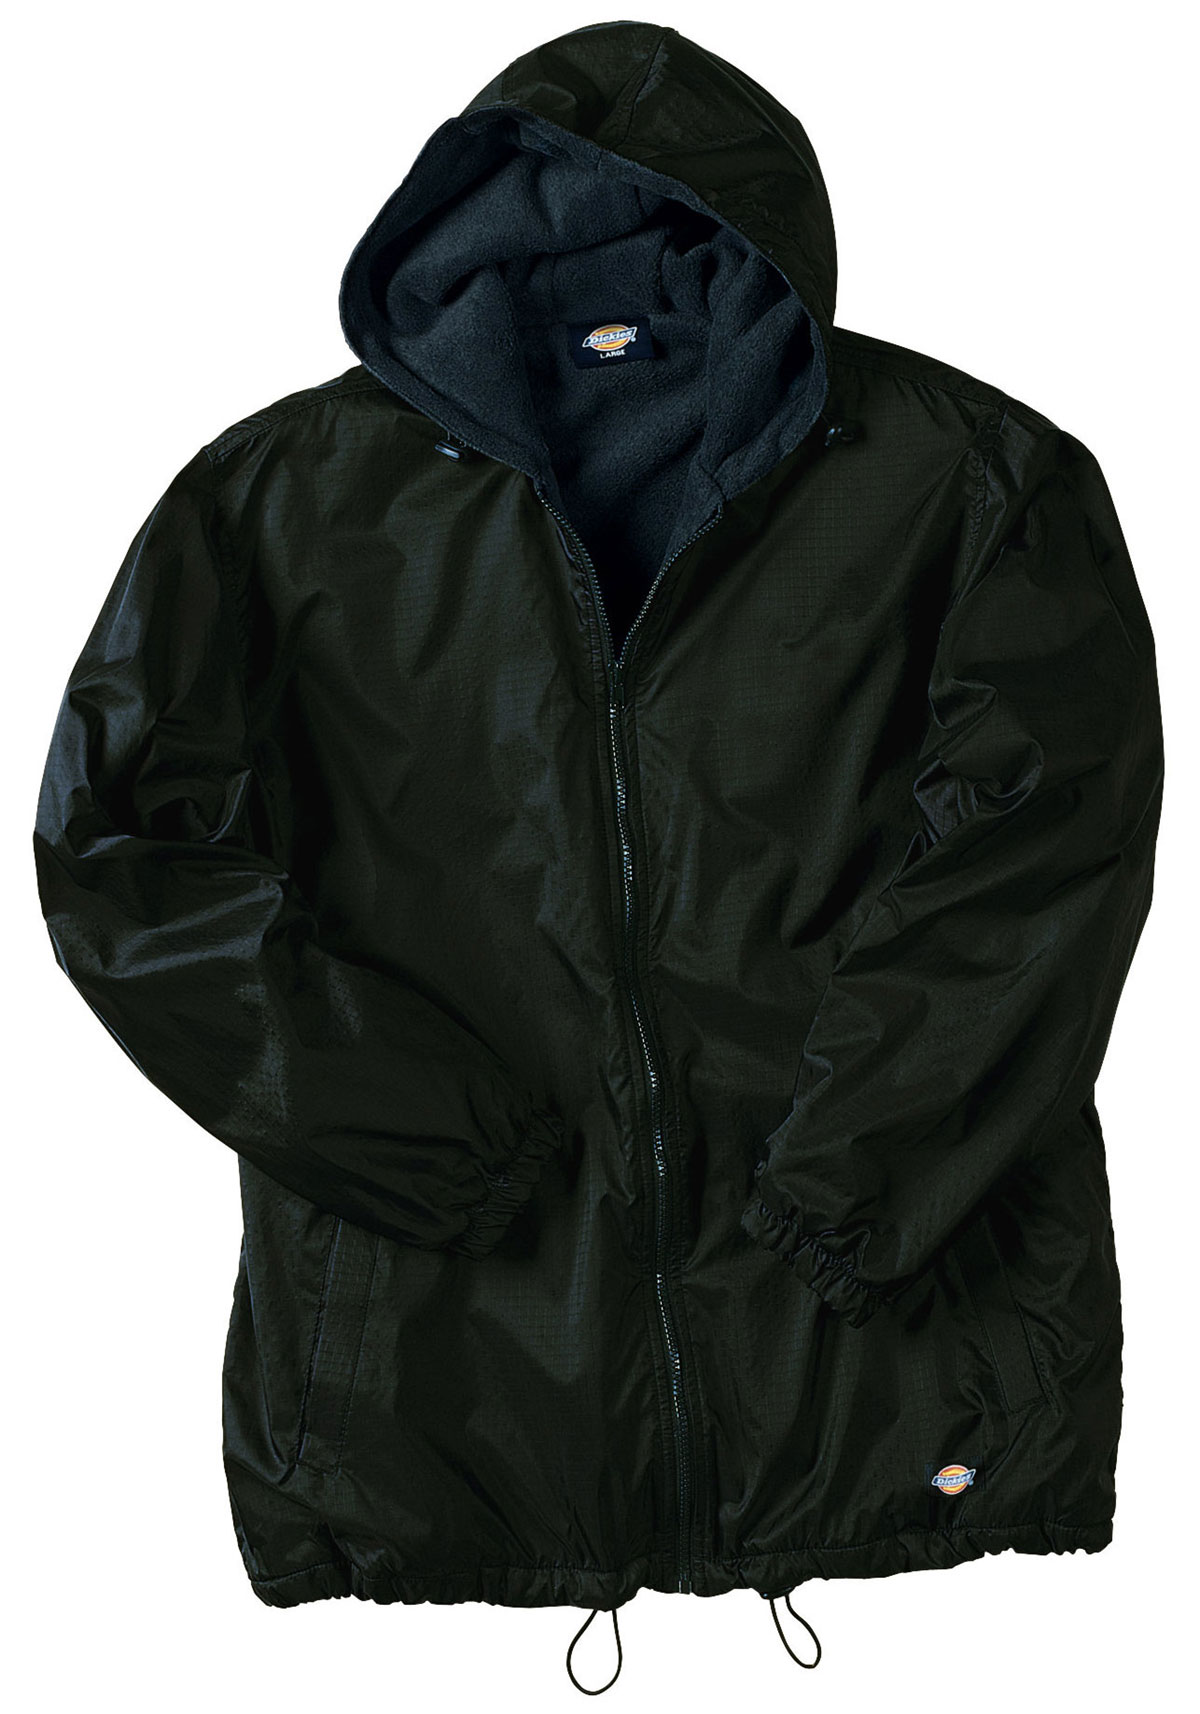 Lined Hooded Nylon Jacket 92